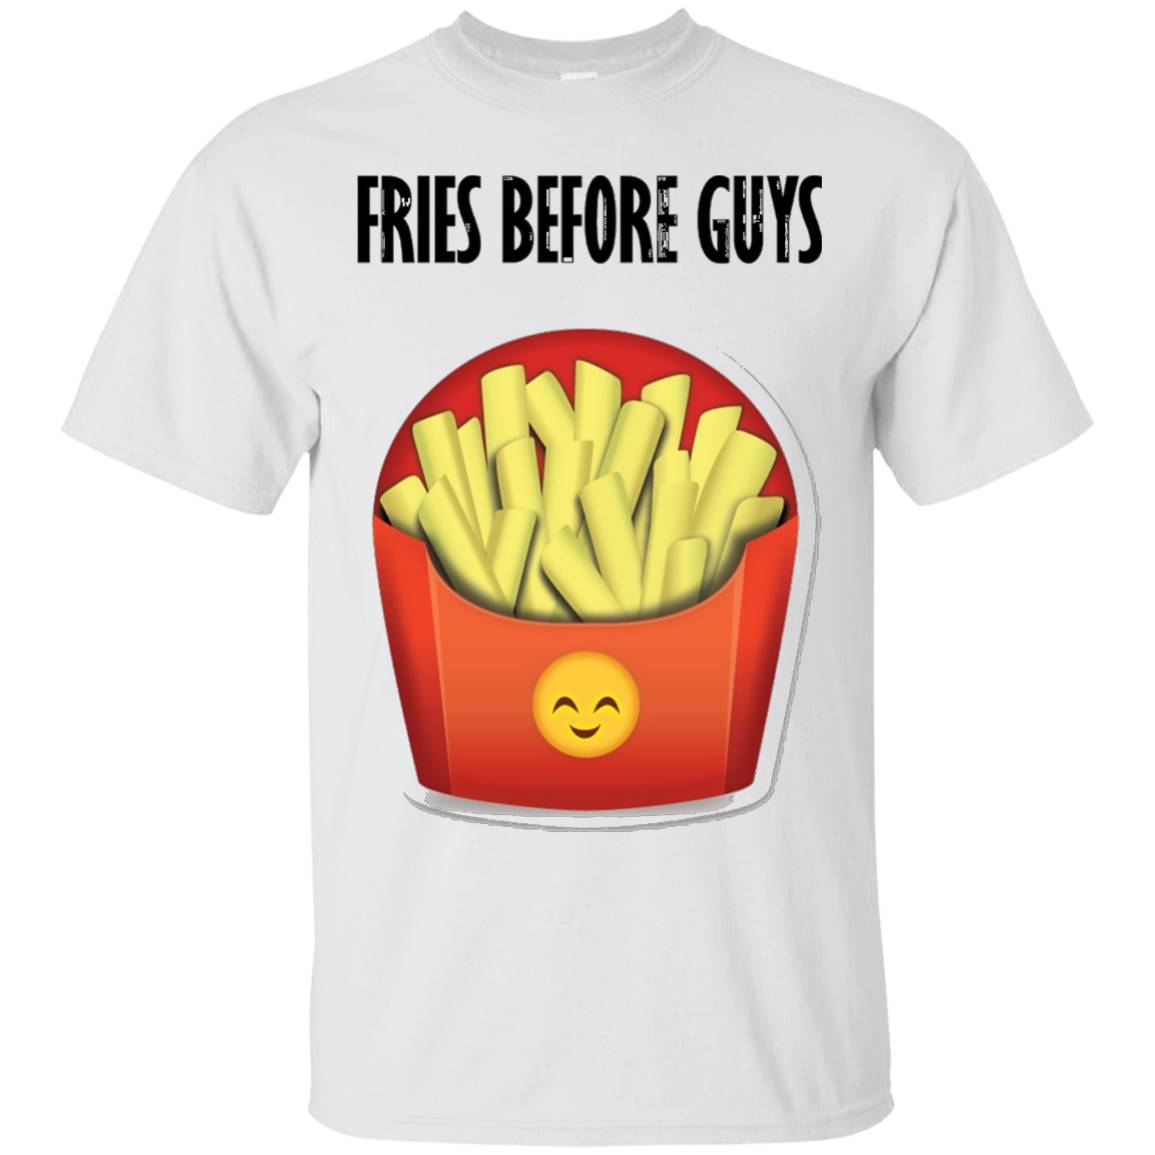 French Fries Emoji Funny T-Shirt for Girls Fries Before Guys